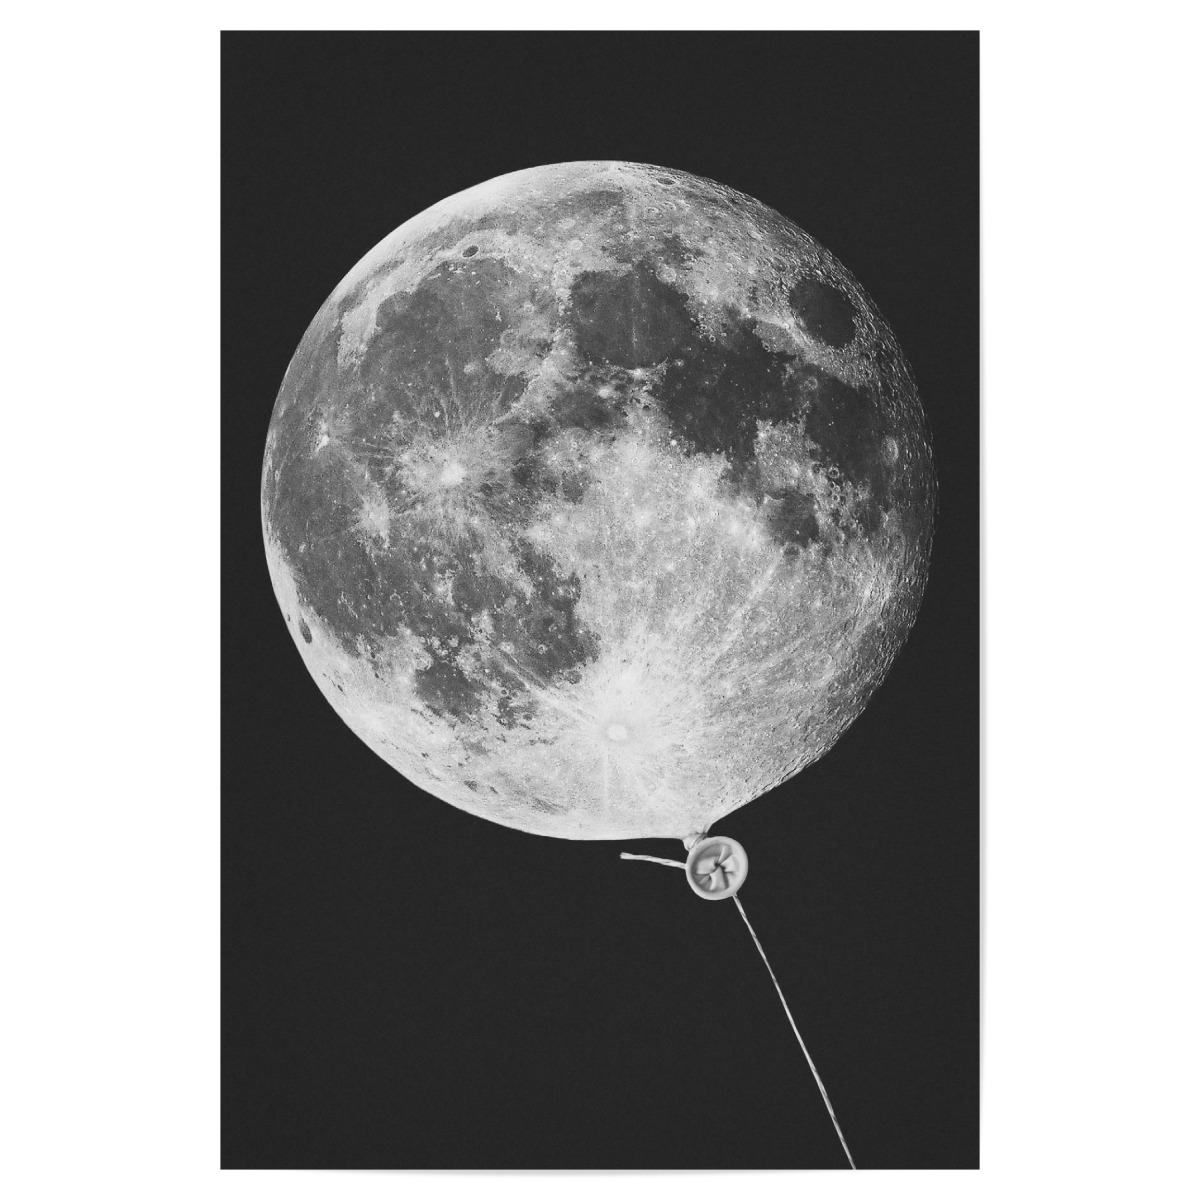 purchase the moon balloon as a poster at artboxone